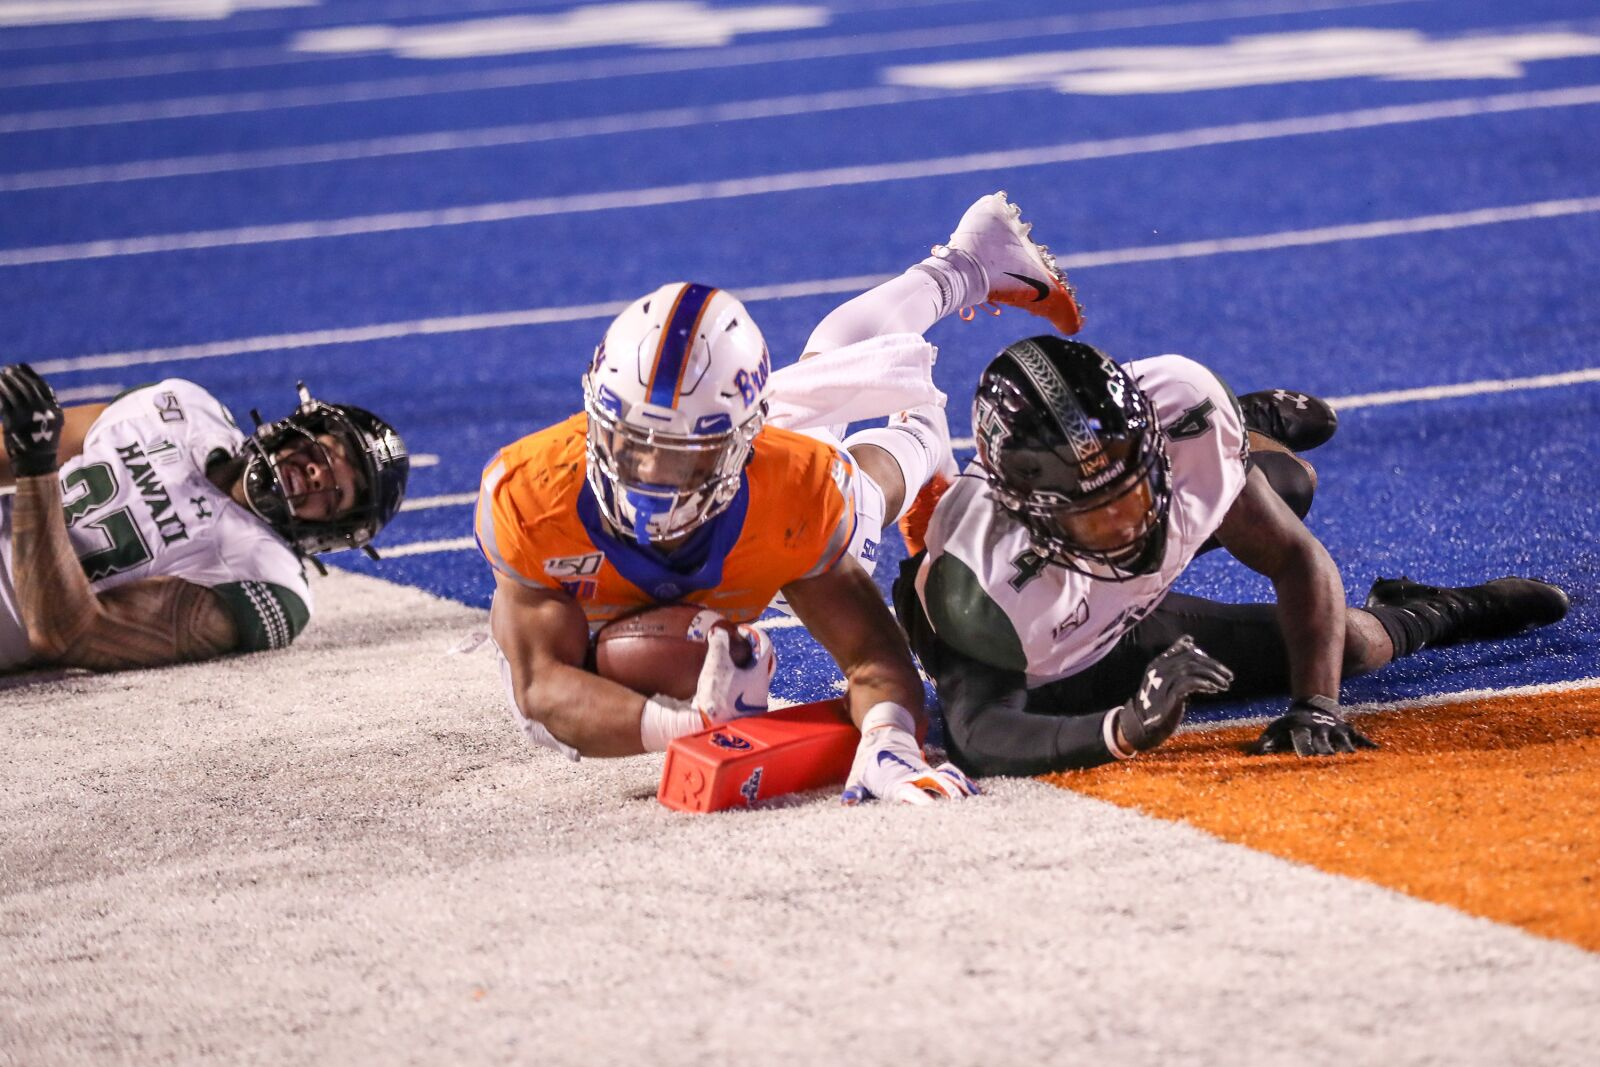 Boise State Football: 3 things we learned in first half of 2019